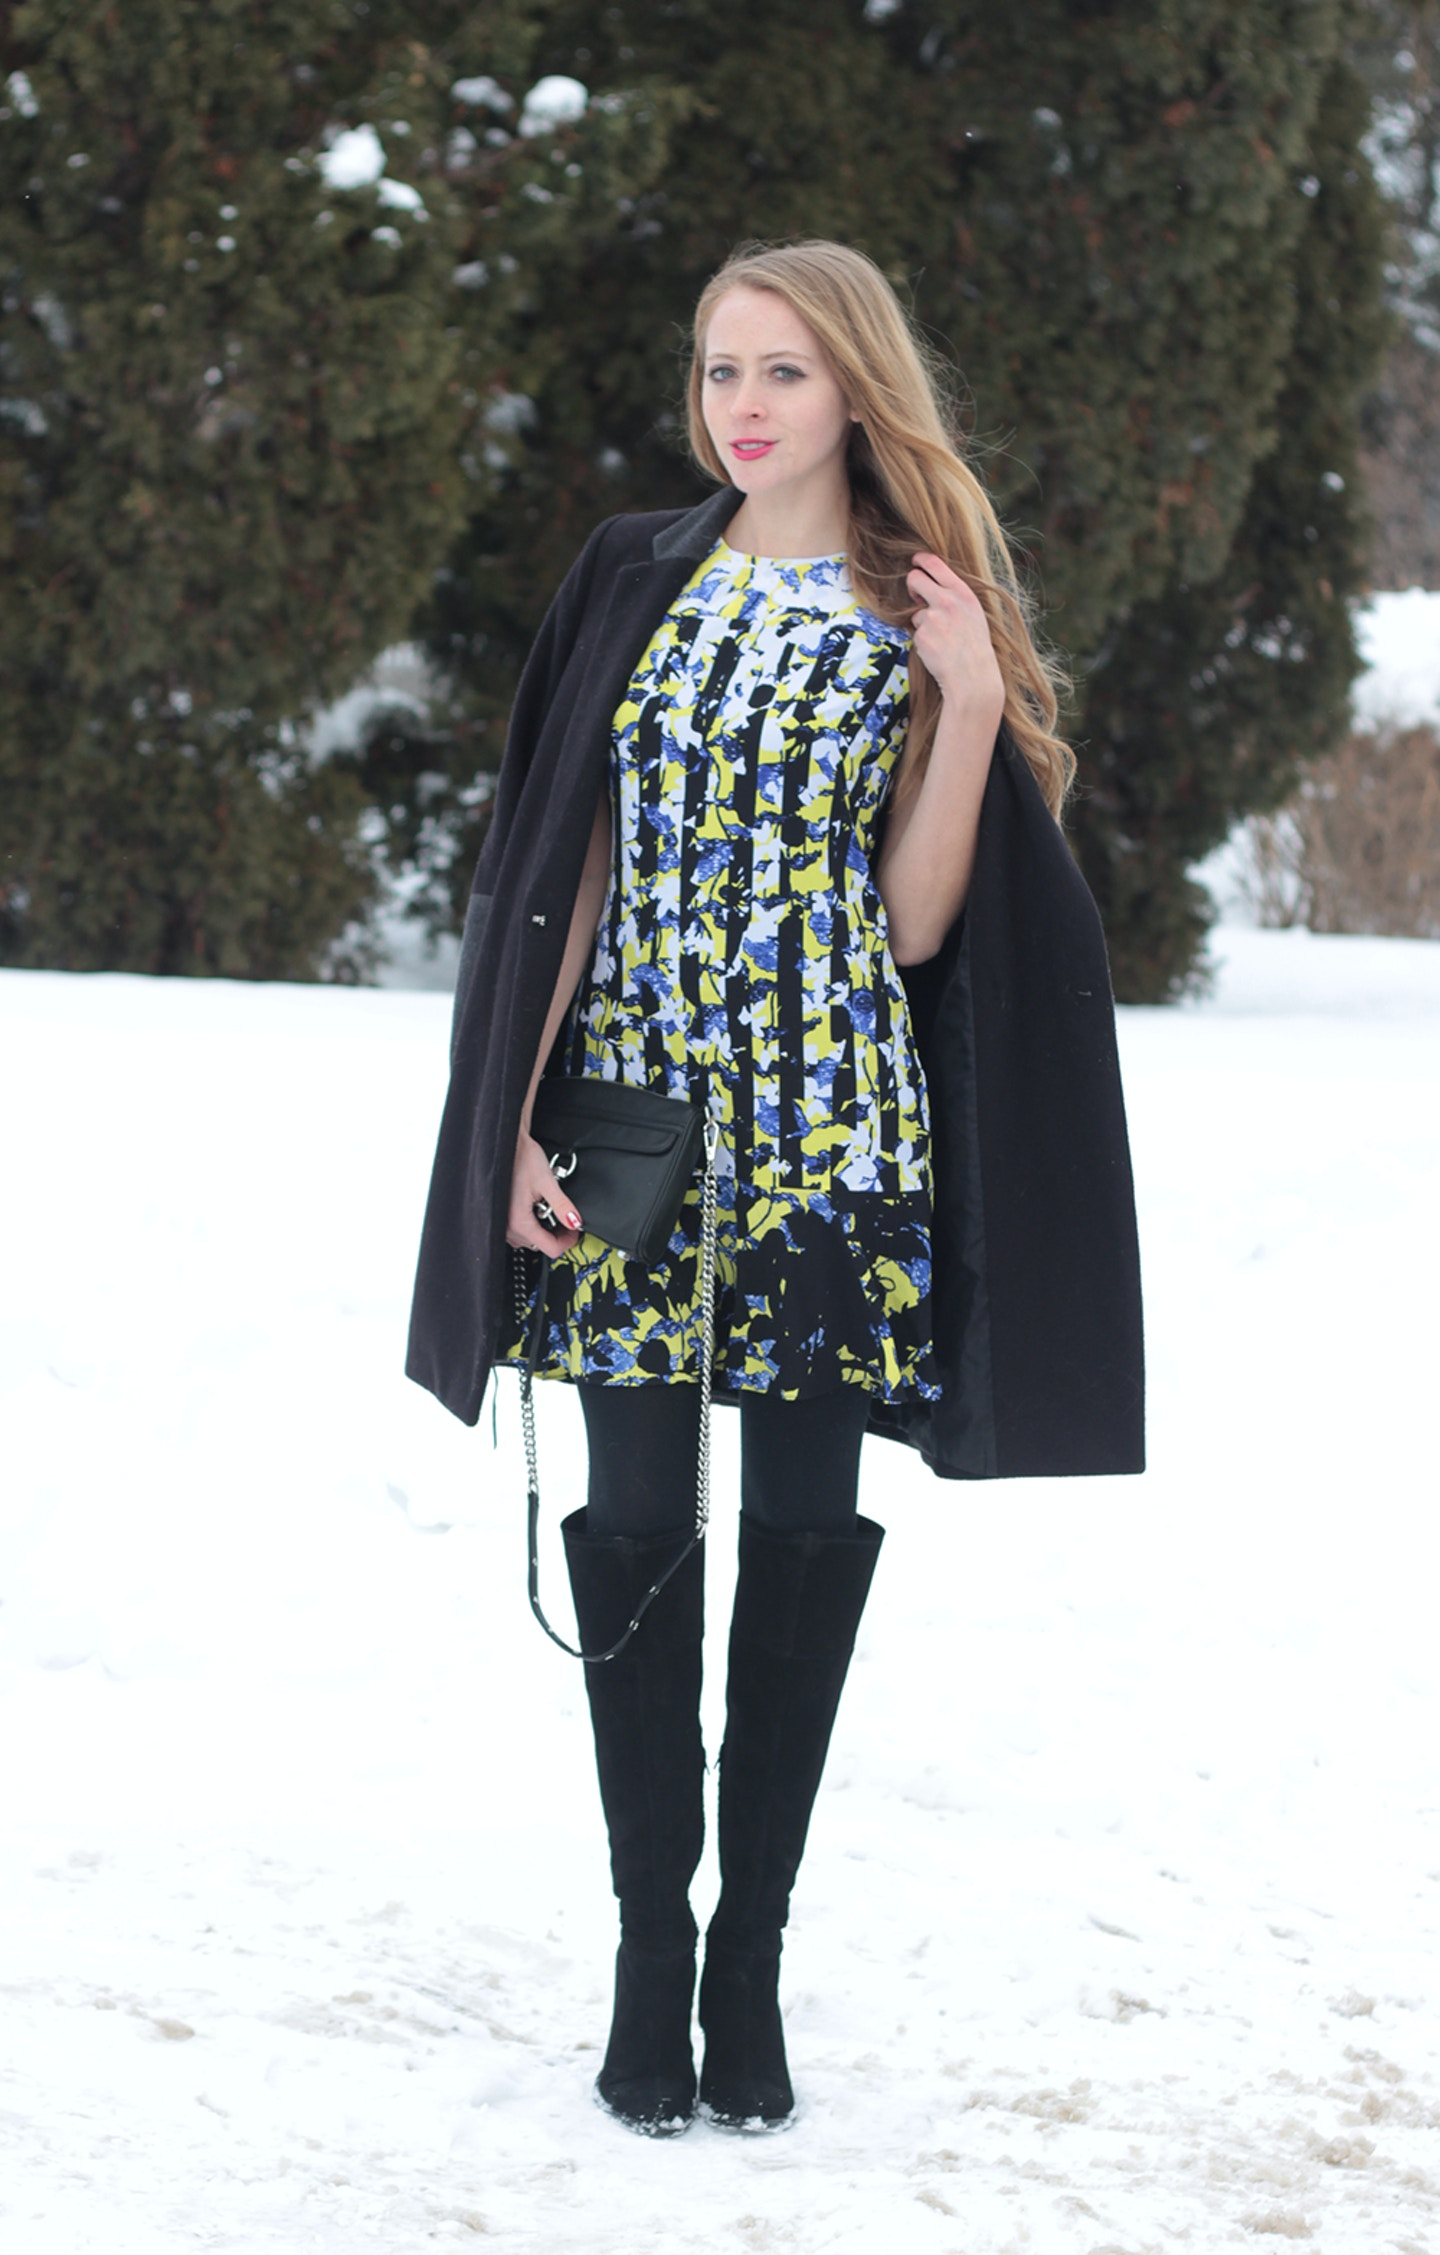 Peter Pilotto for Target – How I styled it